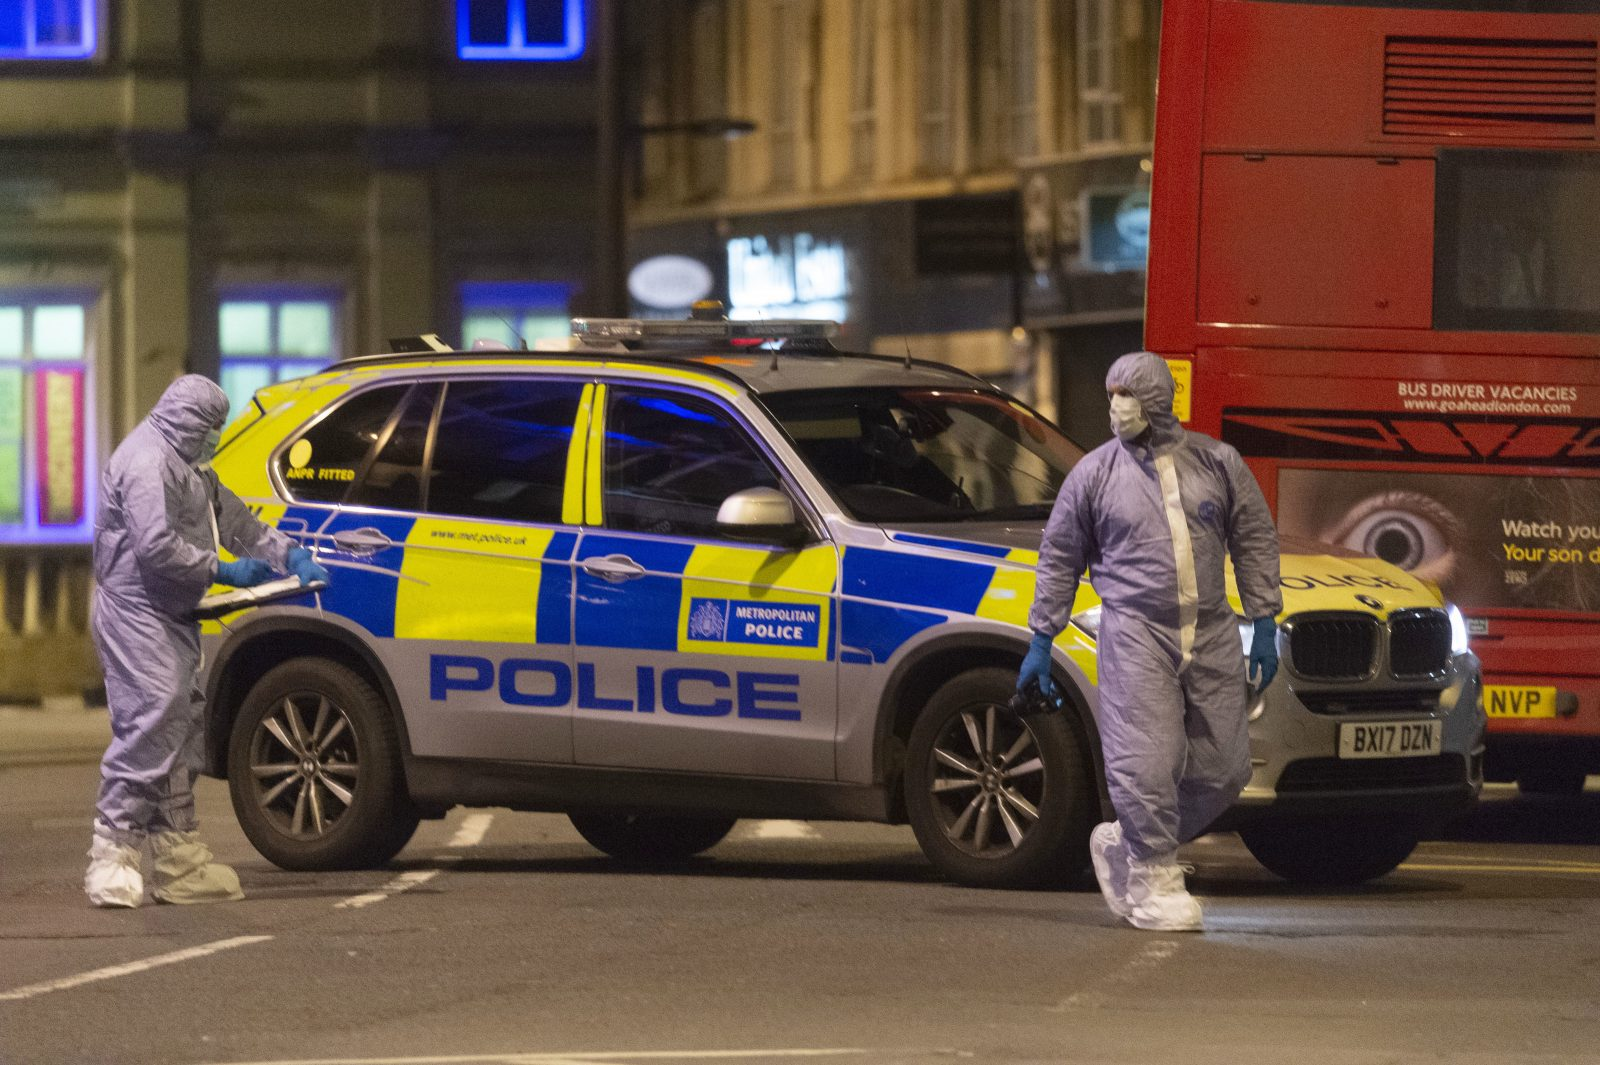 BRITAIN-LONDON-TERRORIST-RELATED INCIDENT